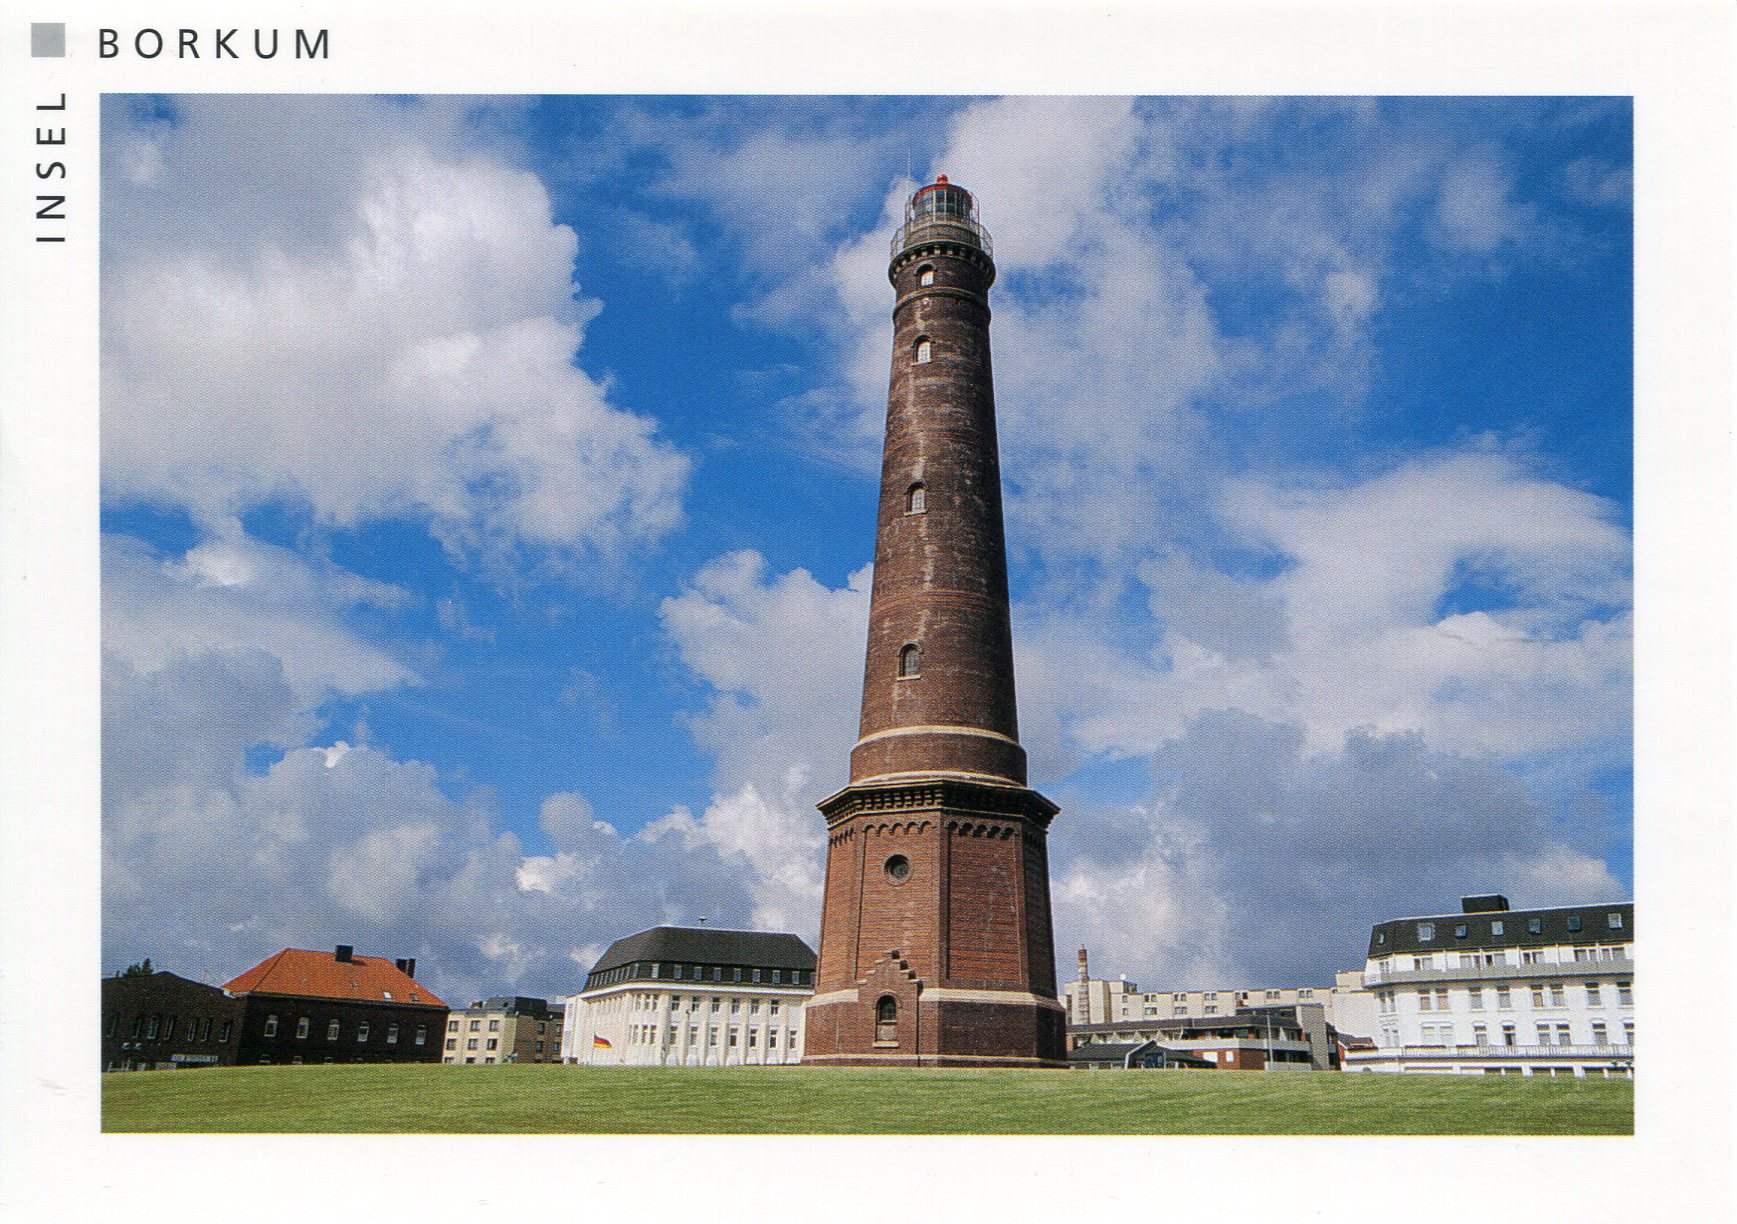 Borkum Germany  city photos gallery : Germany Borkum Lighthouse